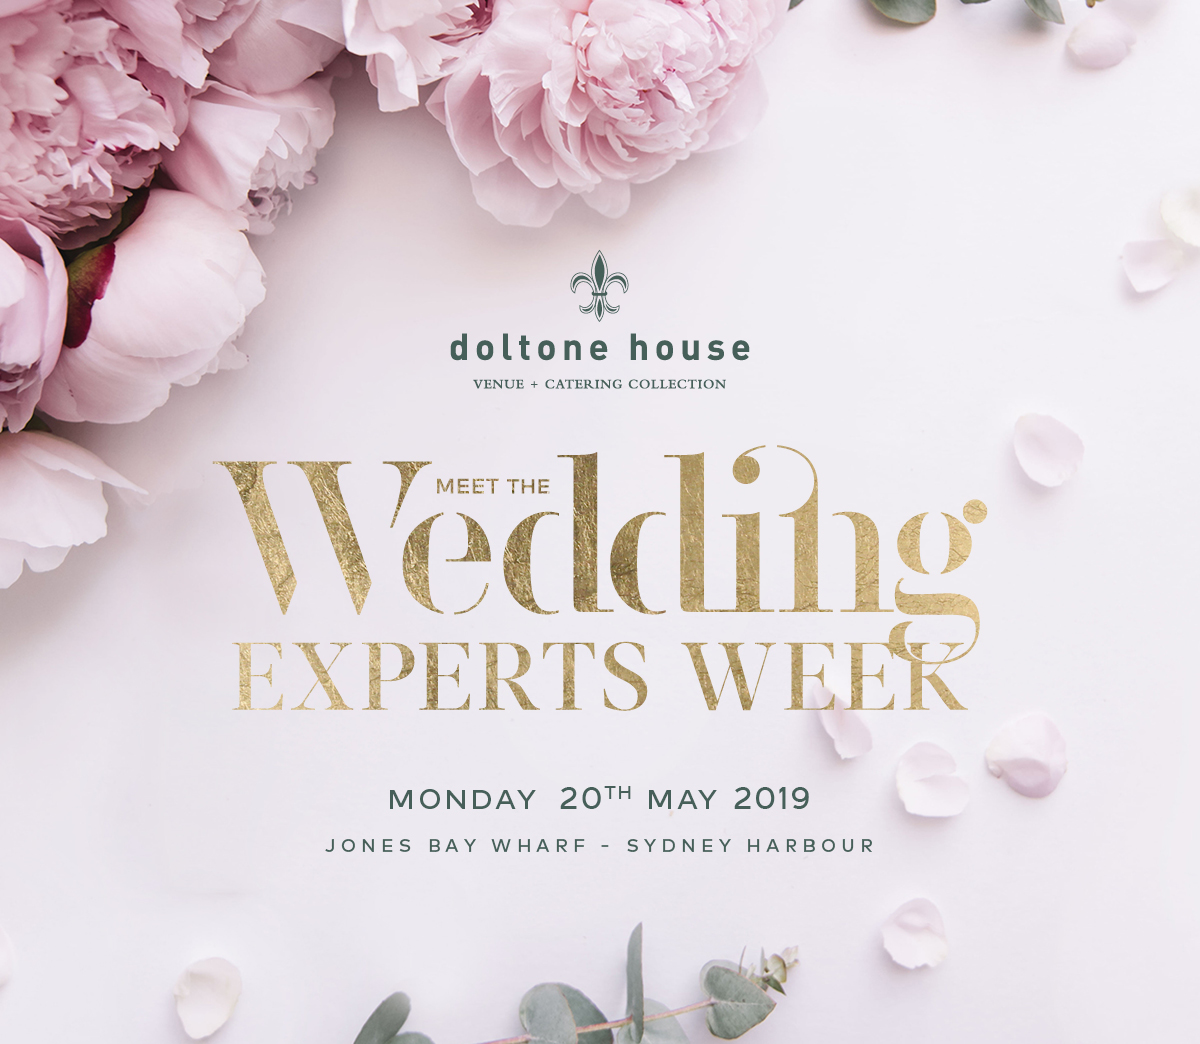 Tickets for Meet the Wedding Experts Week - May 2019 in Pyrmont from Ticketbooth